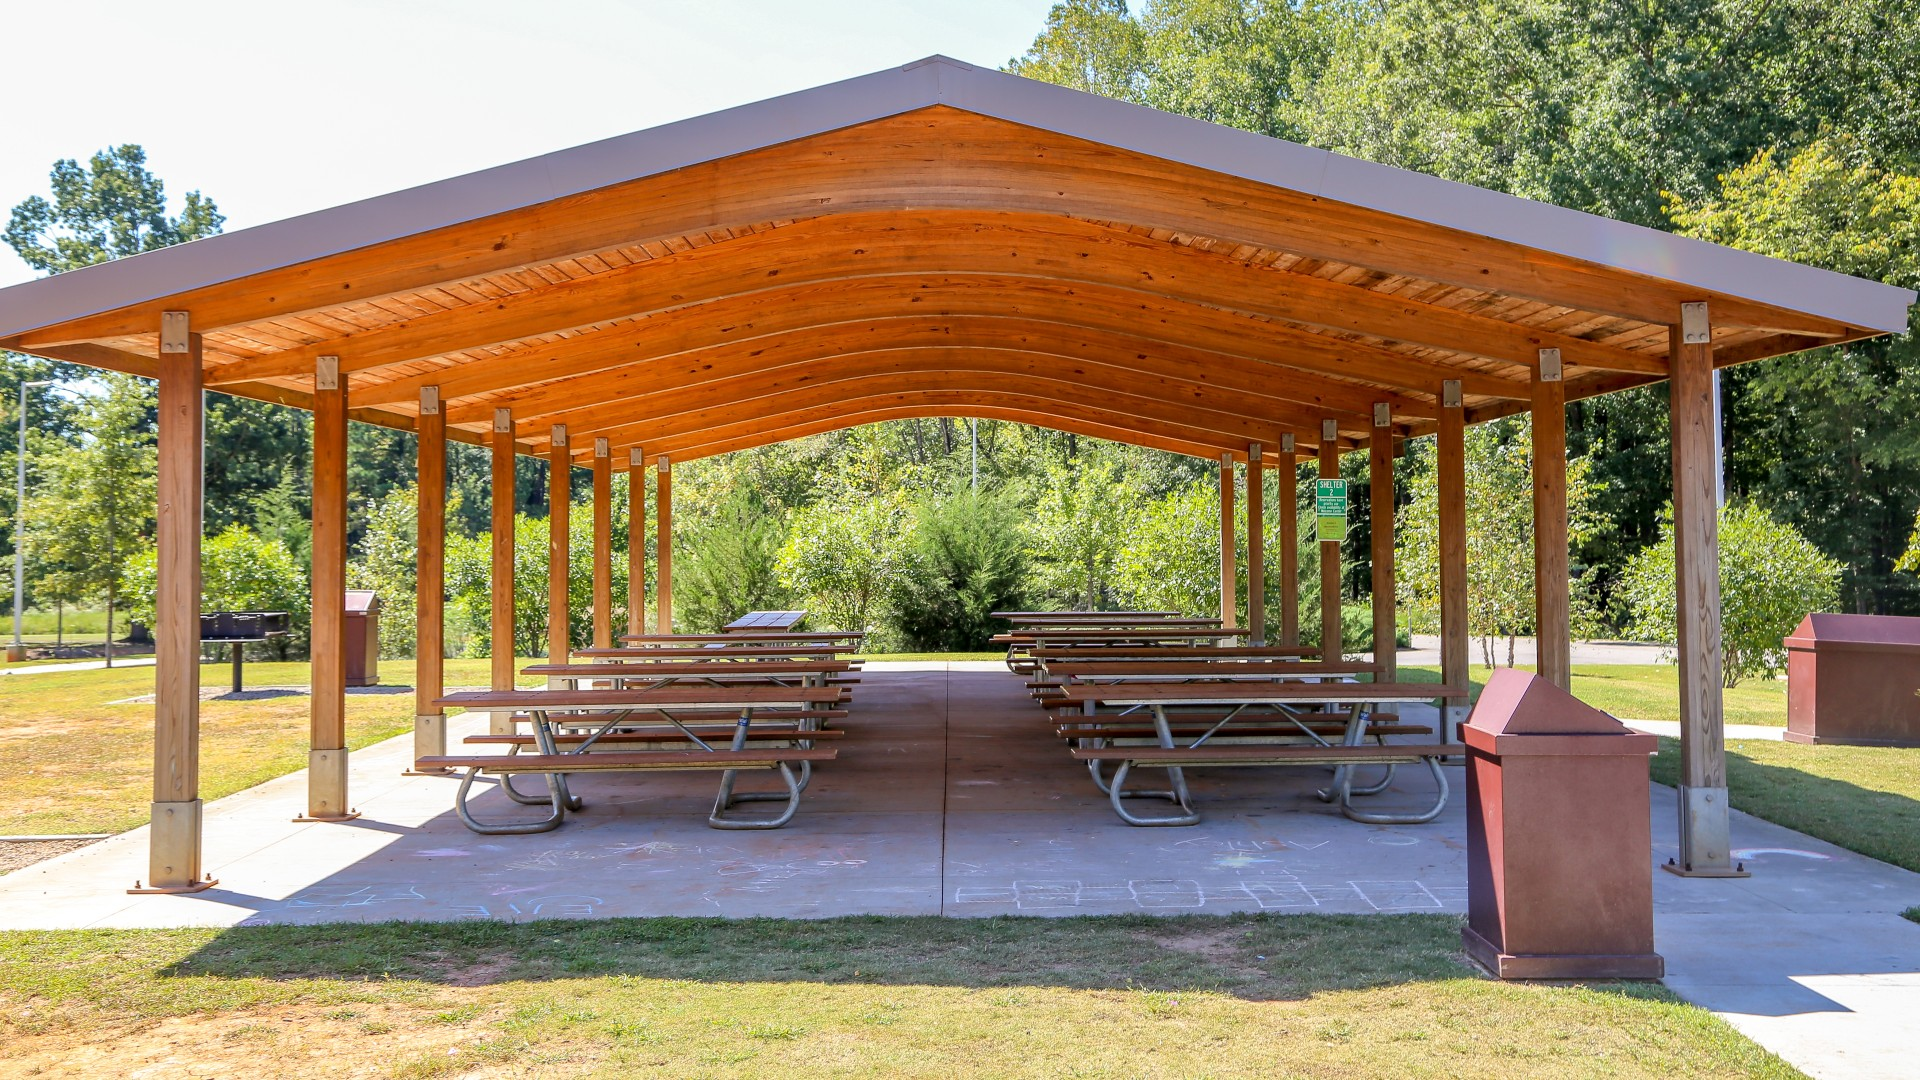 A second slightly smaller picnic shelter with a dozen tables and two grills